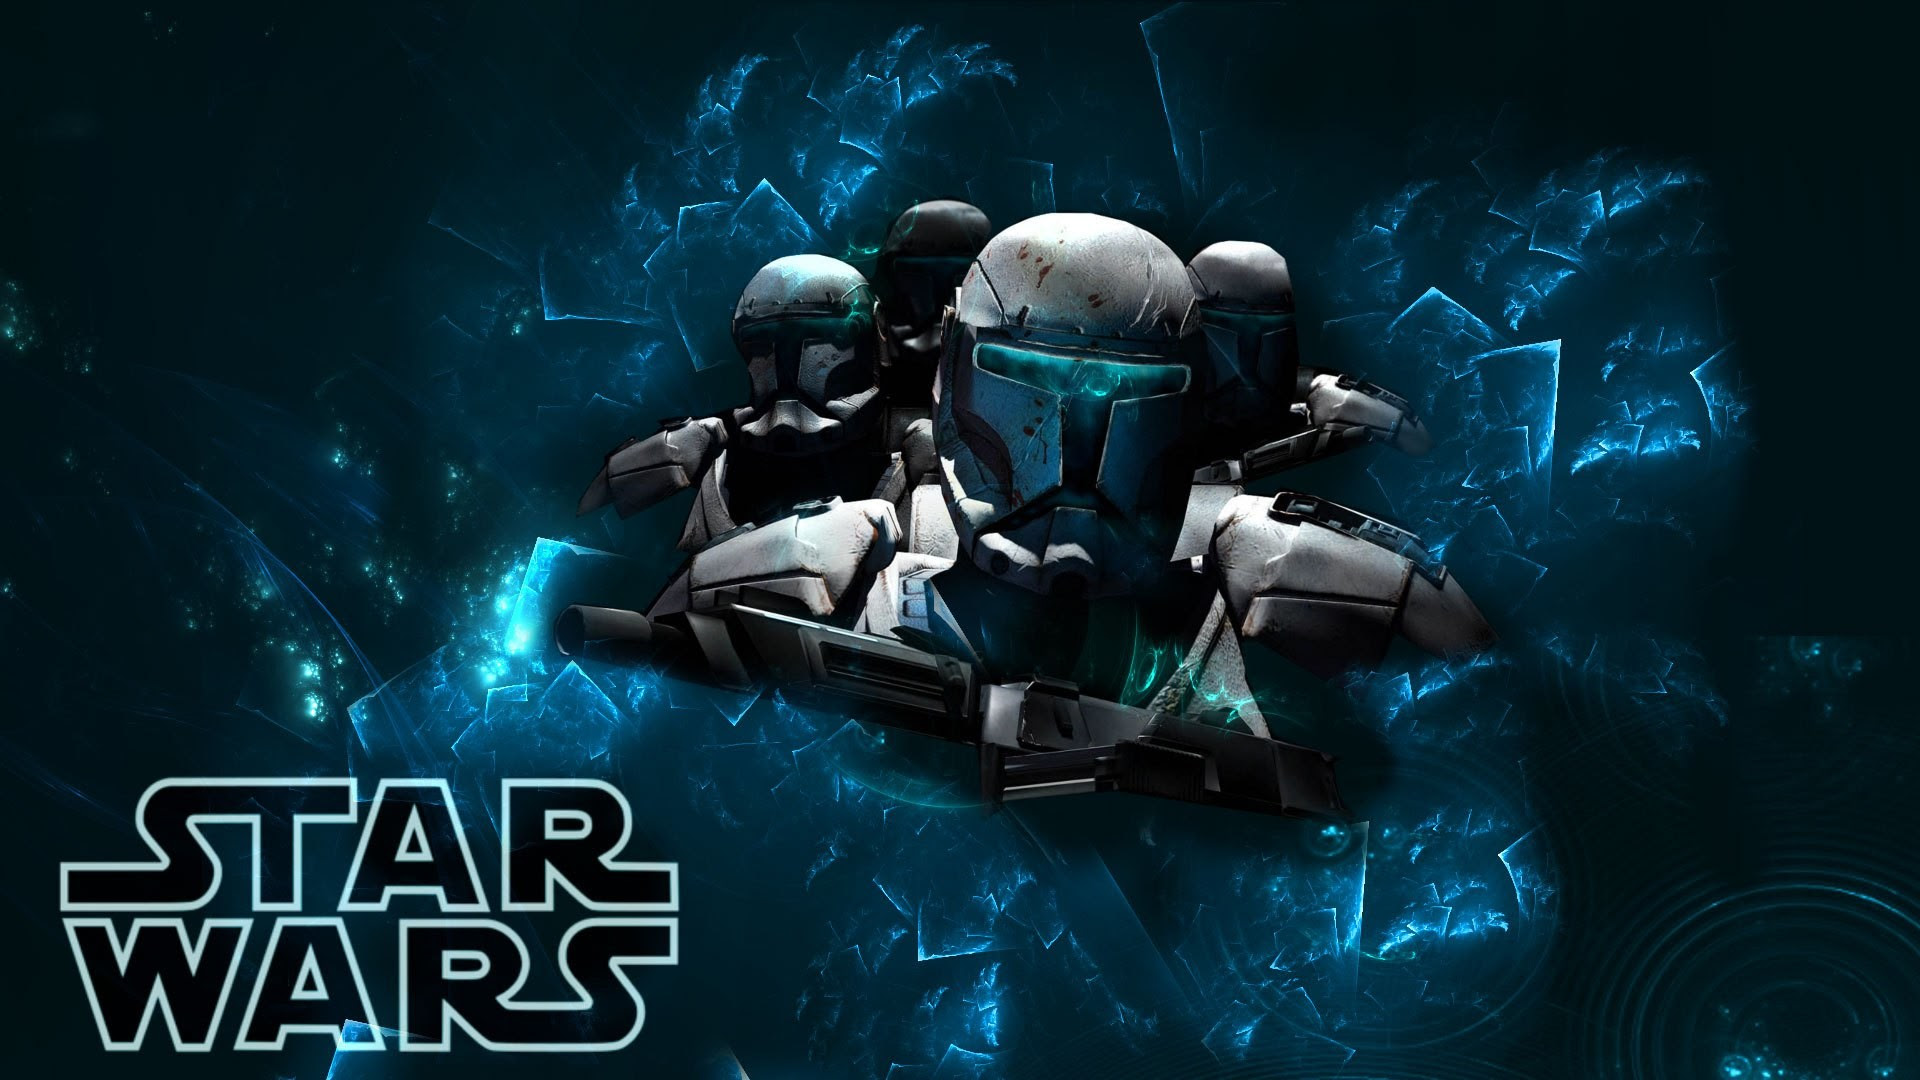 Star Wars Live Wallpaper Android 70 Images